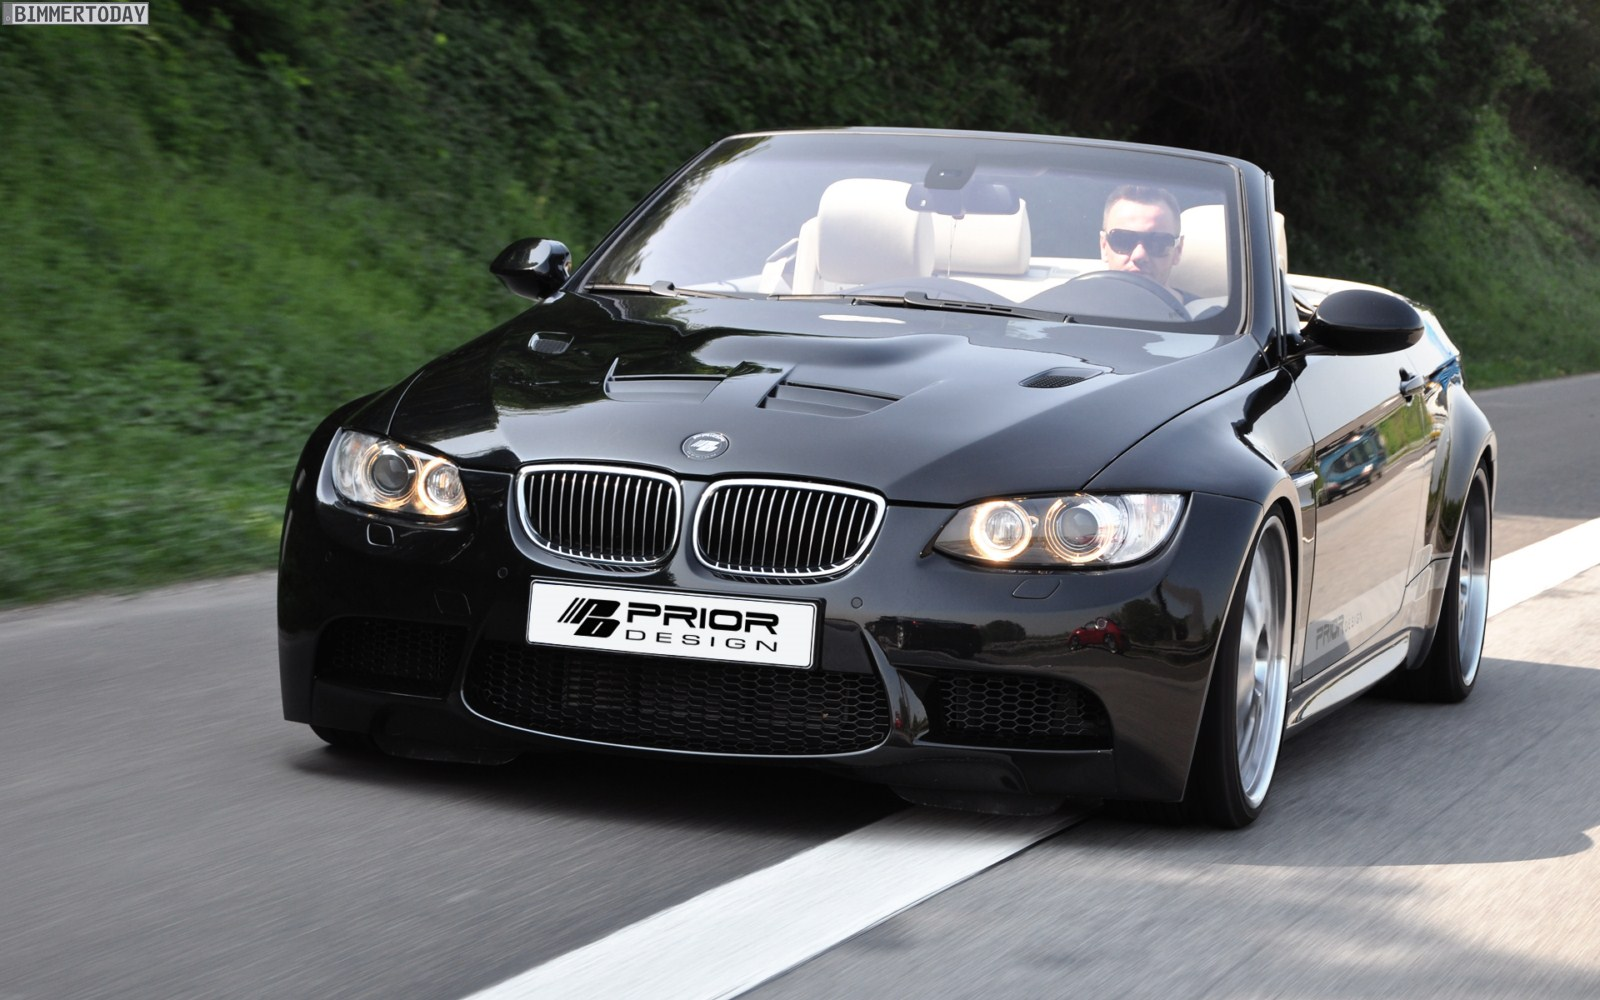 Prior Design Offers A Wide Body Kit For Bmw 3 Series